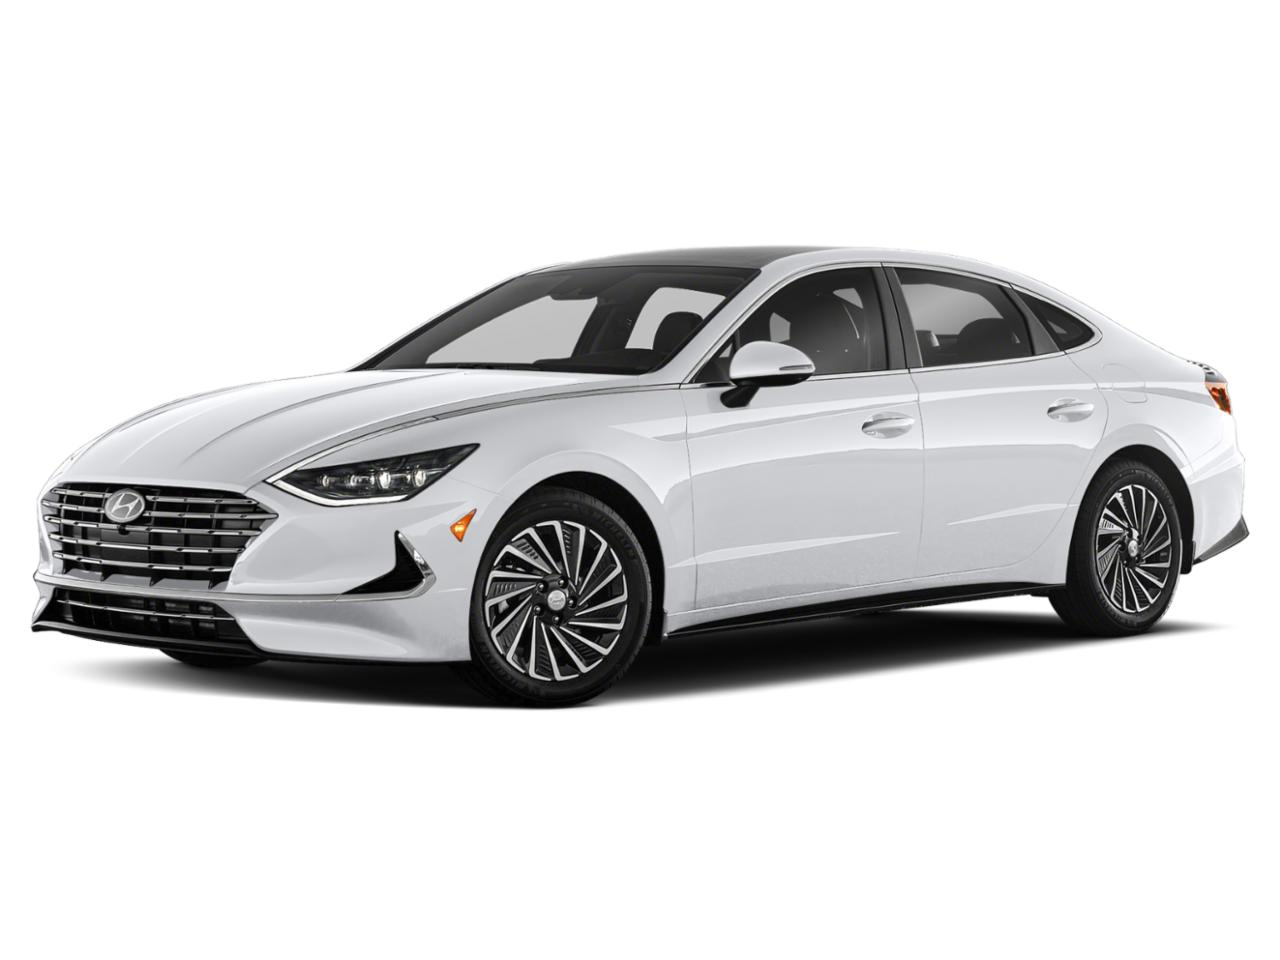 2020 Hyundai Sonata Hybrid Vehicle Photo in Quakertown, PA 18951